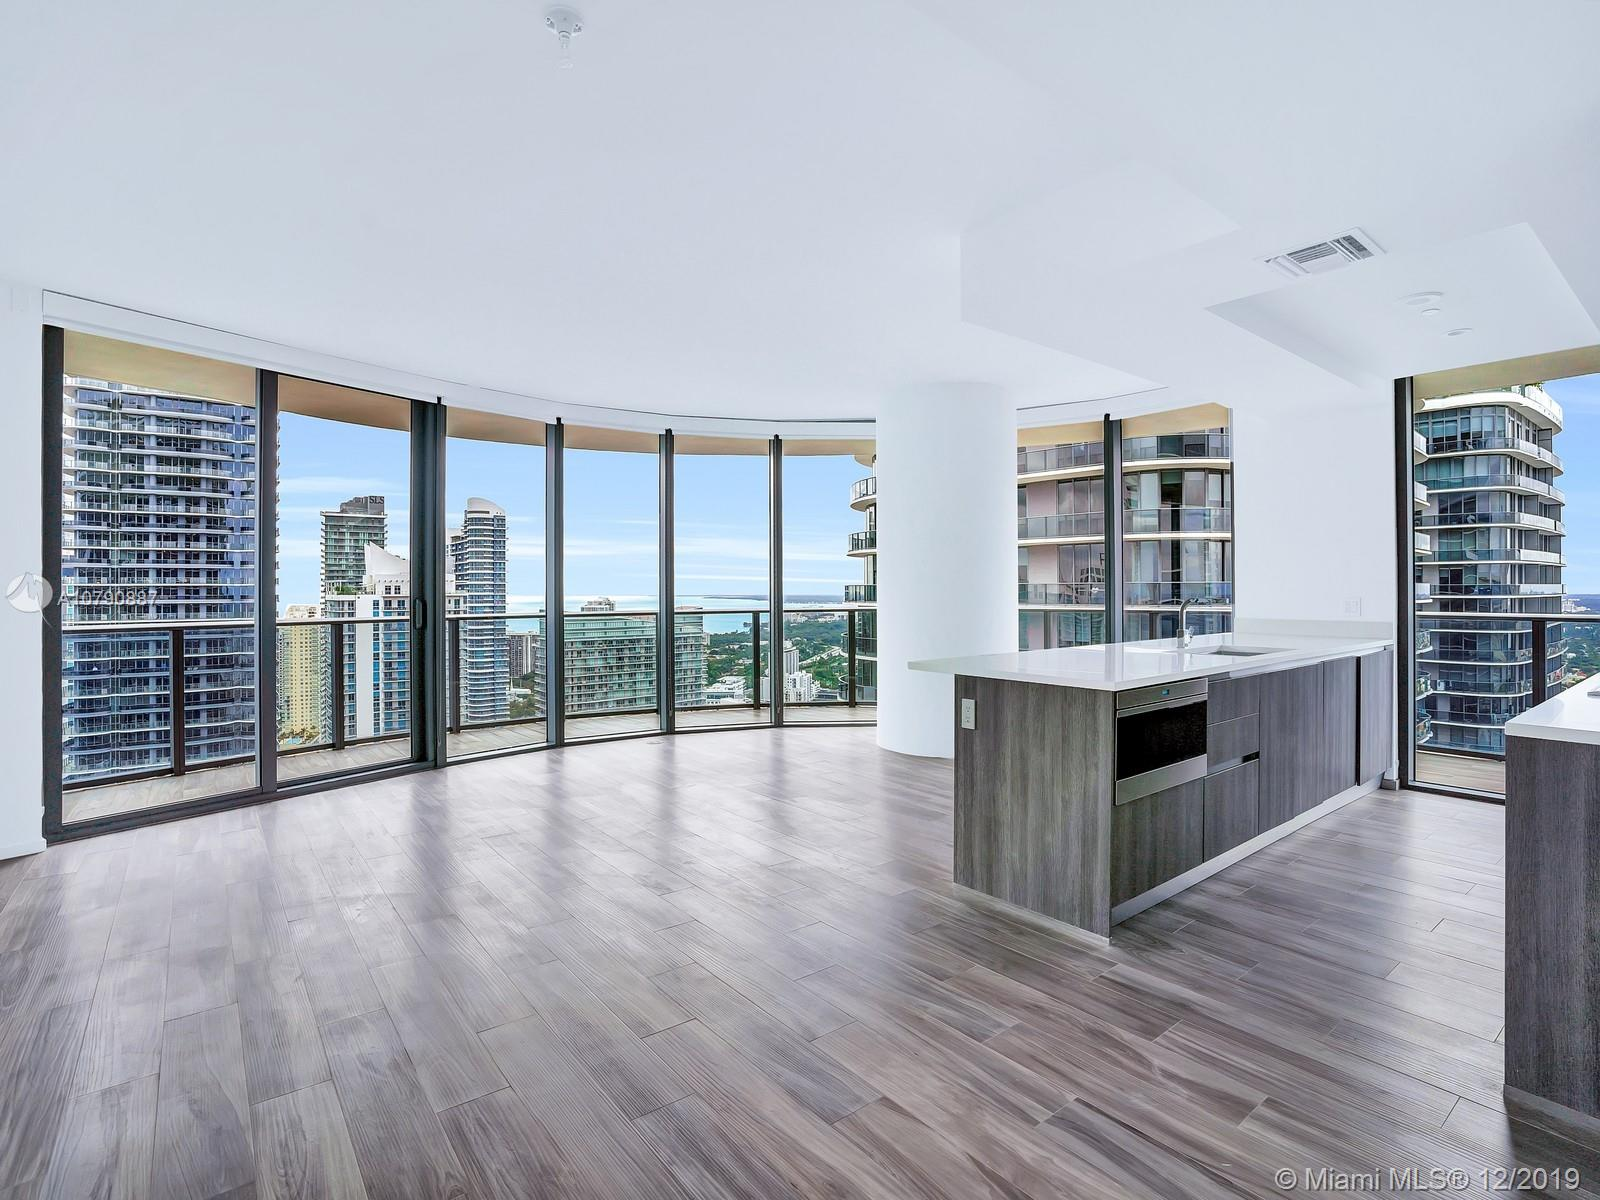 Turn the Key to the largest, most envied kitchen & living room spaced 3 bed/ 4 bath + den layout offering 1,774sf in SLS Lux! Boasting wraparound floor-to-ceiling windows accompanied by an extended balcony overlooking Biscayne Bay & the Brickell skyline. Each spacious bedroom features a relaxing en-suite bathroom and offers plenty of closet and storage space. The walkability & prime location offers a desirable live, work & play lifestyle. Enjoy concierge & room service from a building-linked iPad.